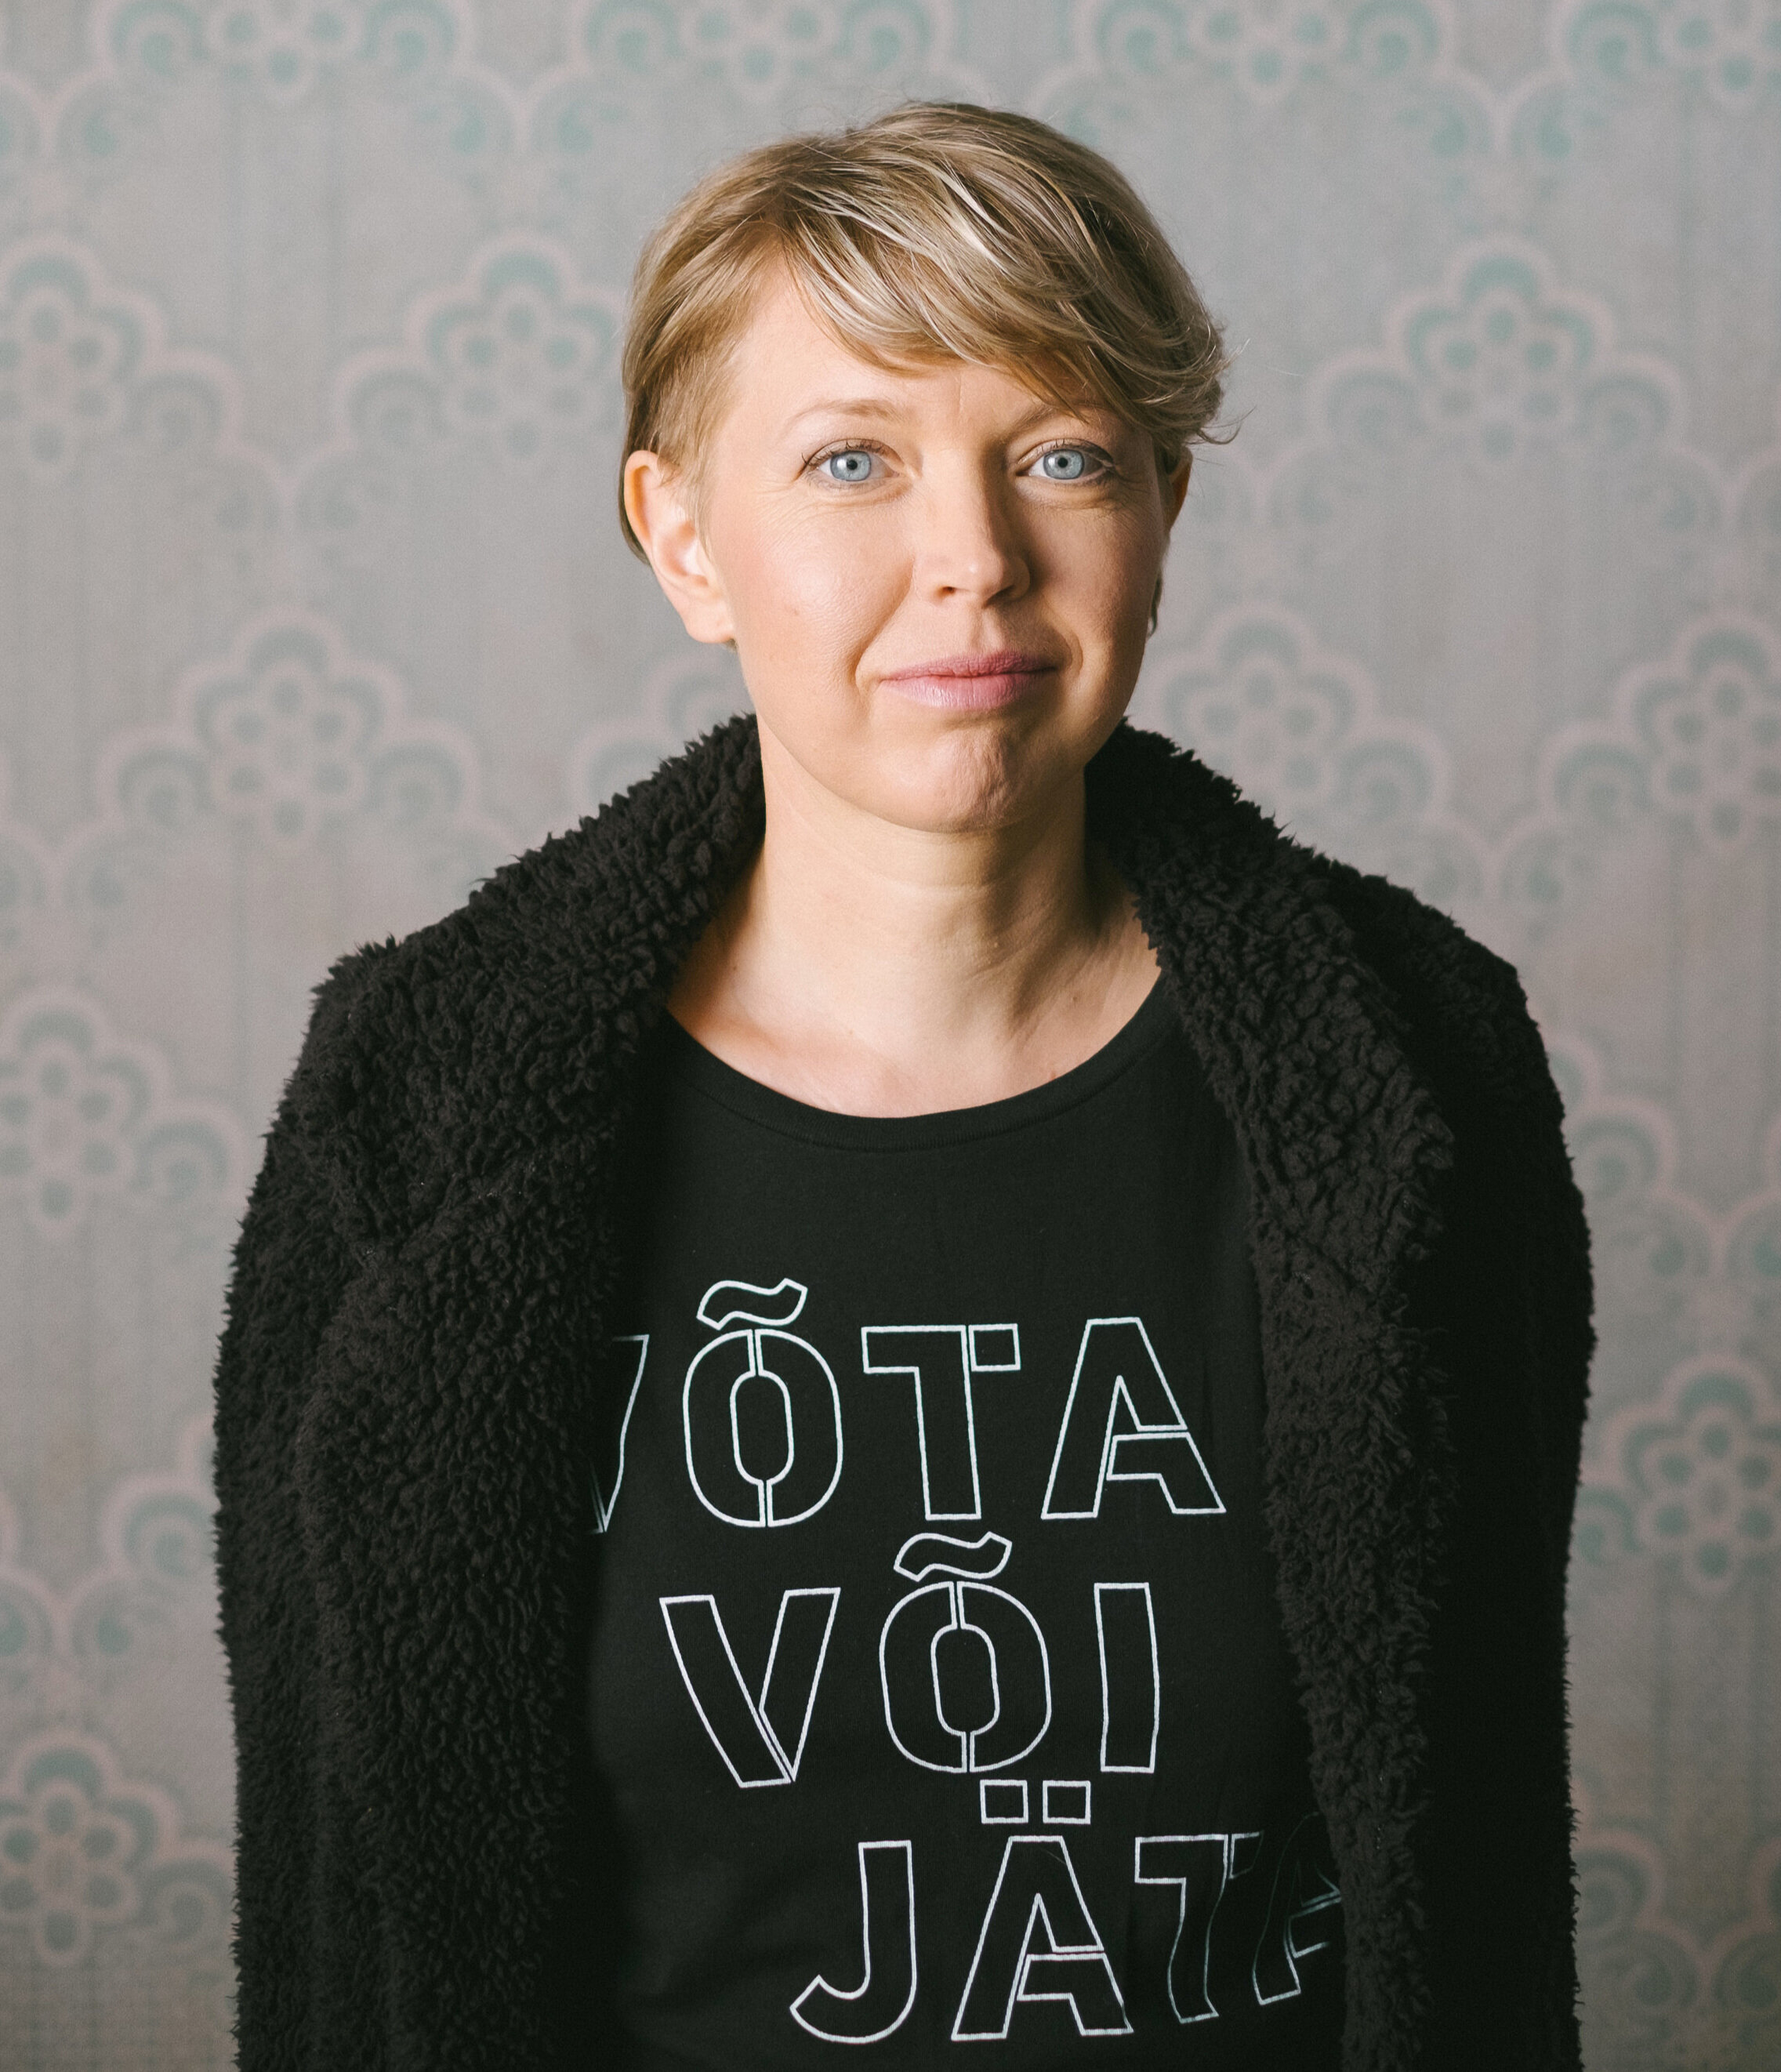 - About The Director:Liina Triškina-Vanhatalo studied Comparative Cultural Theory at the Estonian Institute of Humanities, and filmmaking at the European Film College in Denmark, as well as at the Film School of Catalonia at Barcelona University. Triškina-Vanhatalo is currently working as a freelance director and editor of documentaries, features and TV programs.